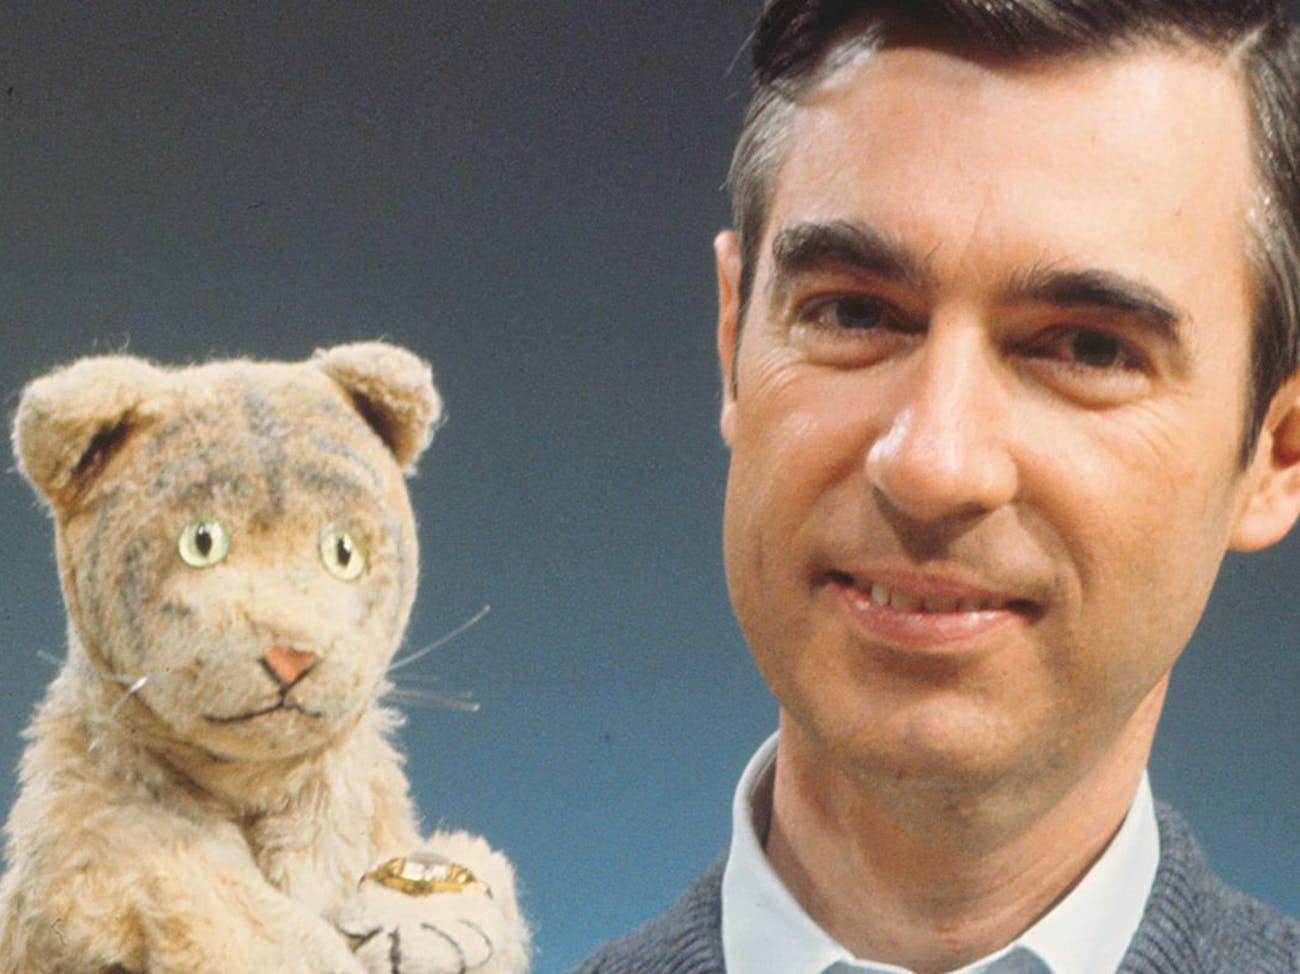 Won't You Be My Neighbor?' Invites, Then Ultimately Rejects